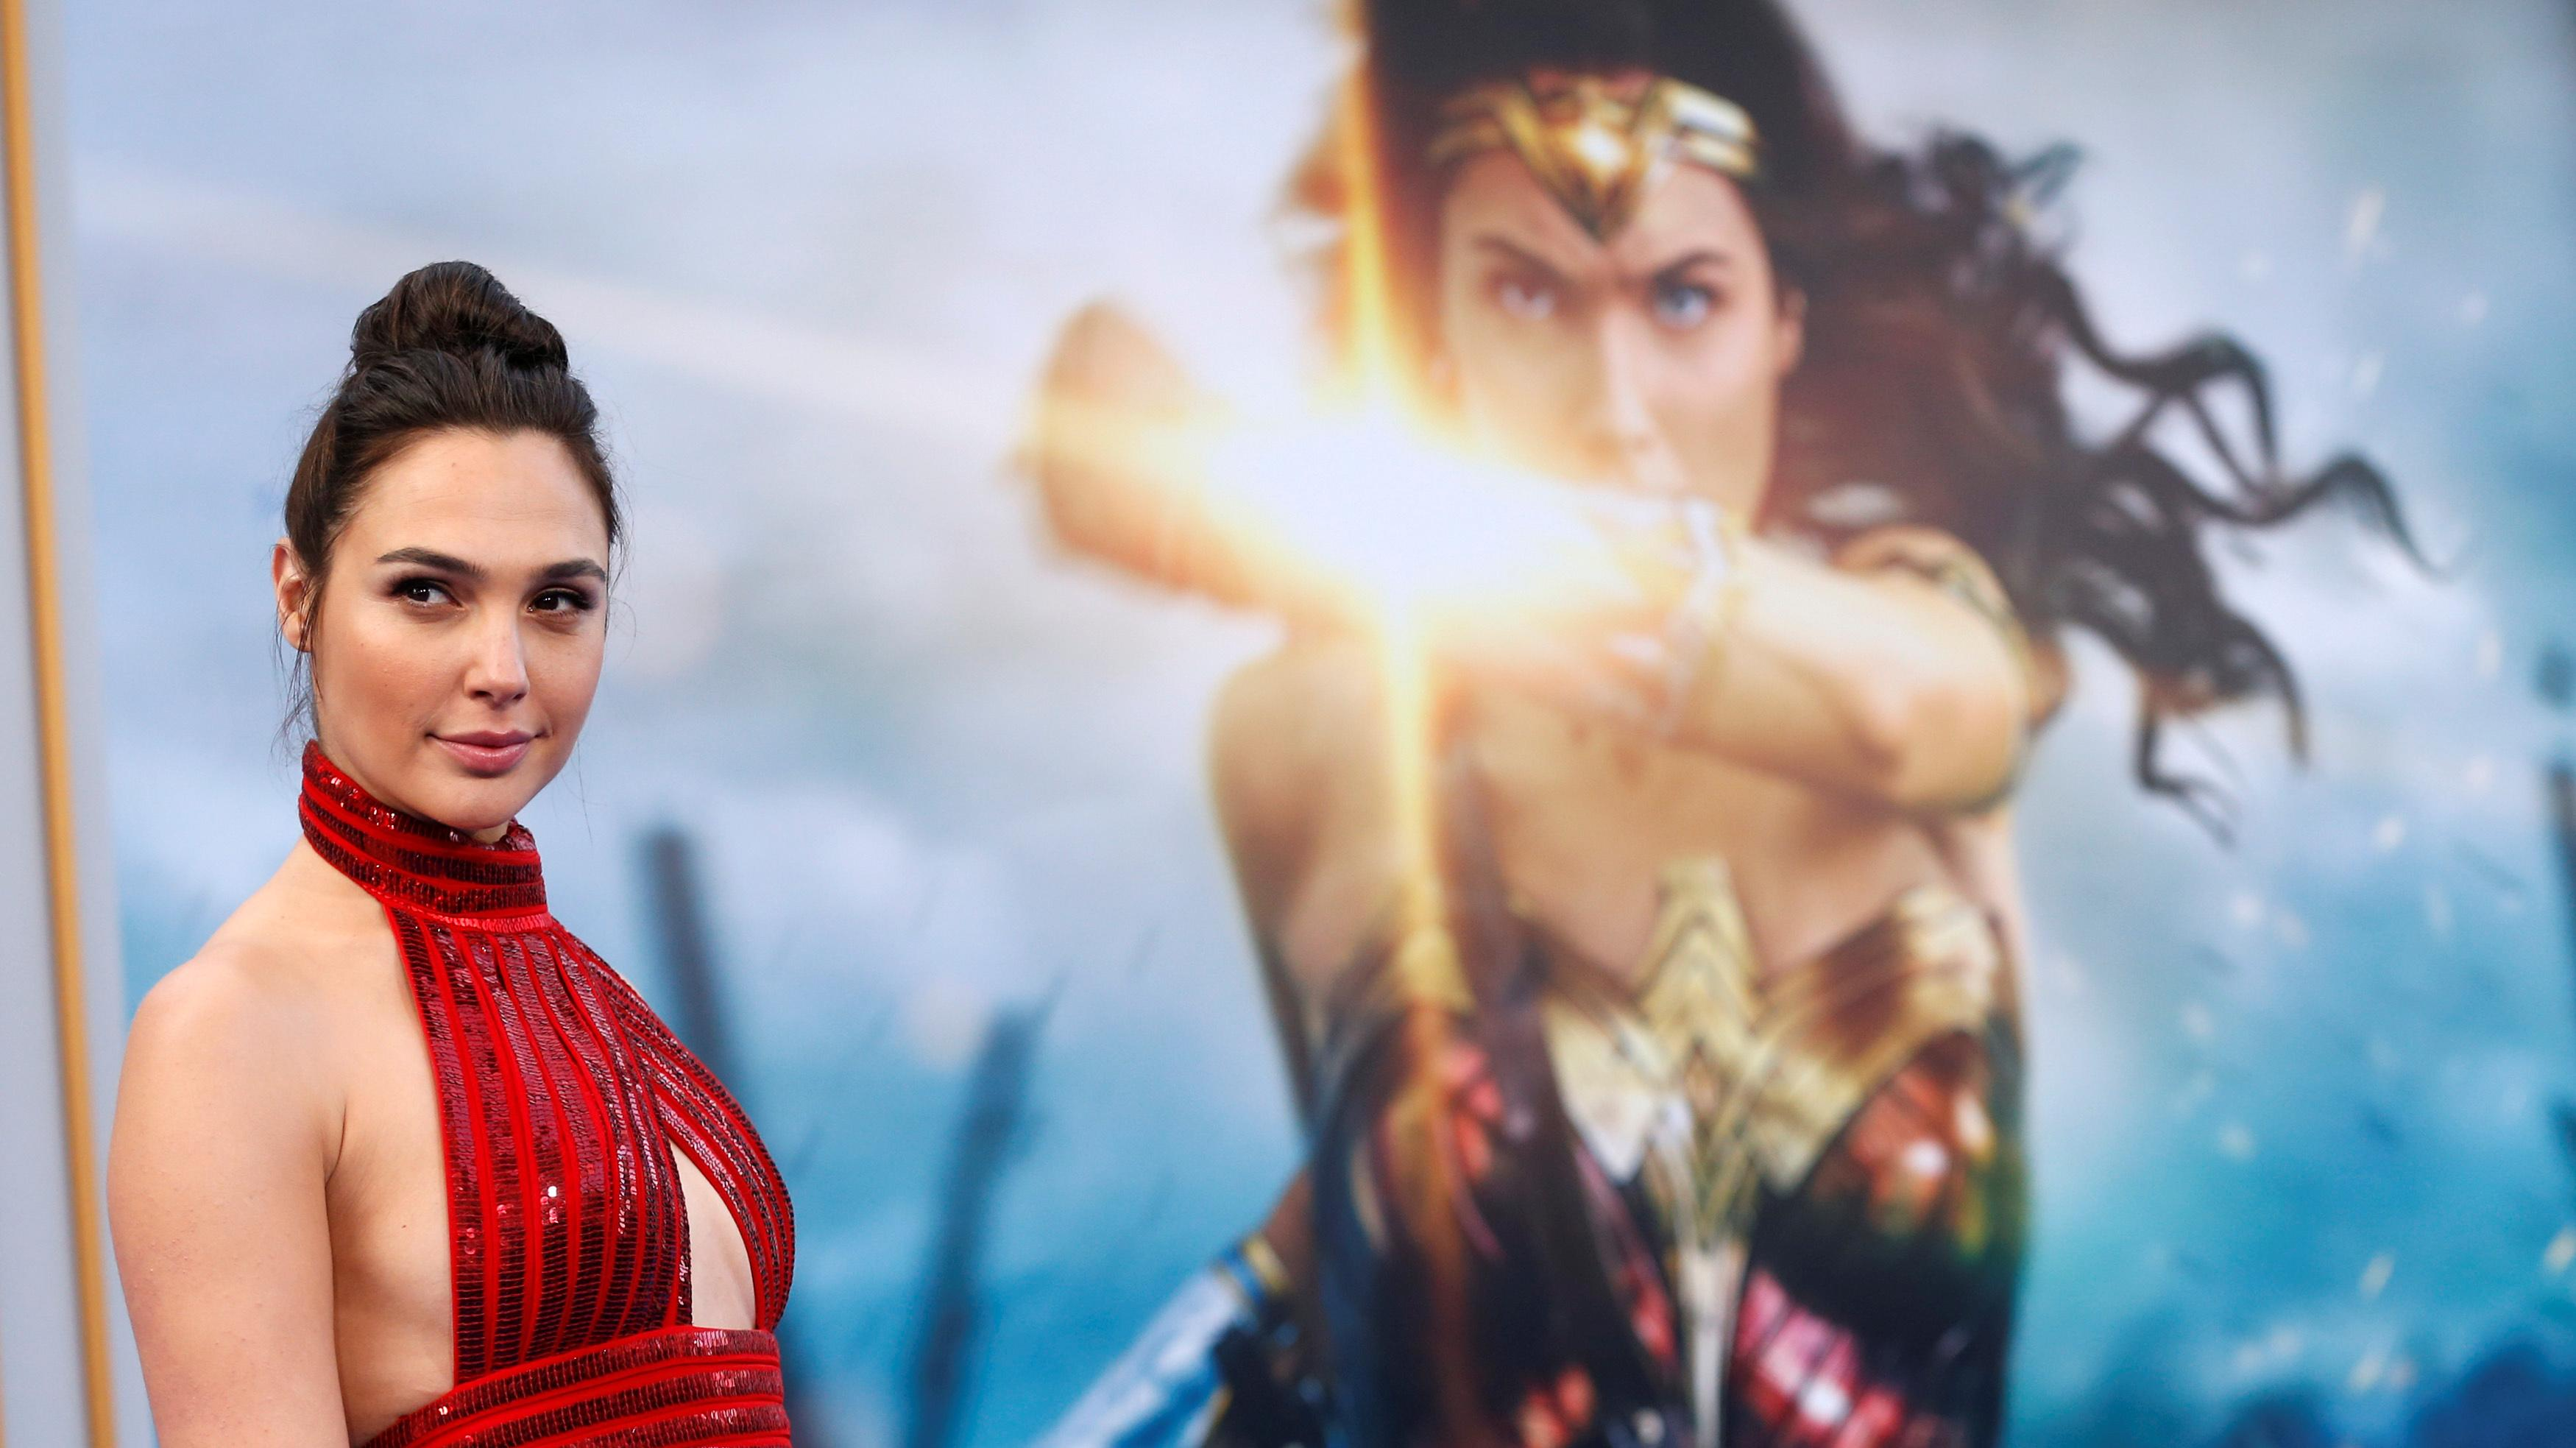 Lebanon seeks ban on 'Wonder Woman' film over its Israeli star